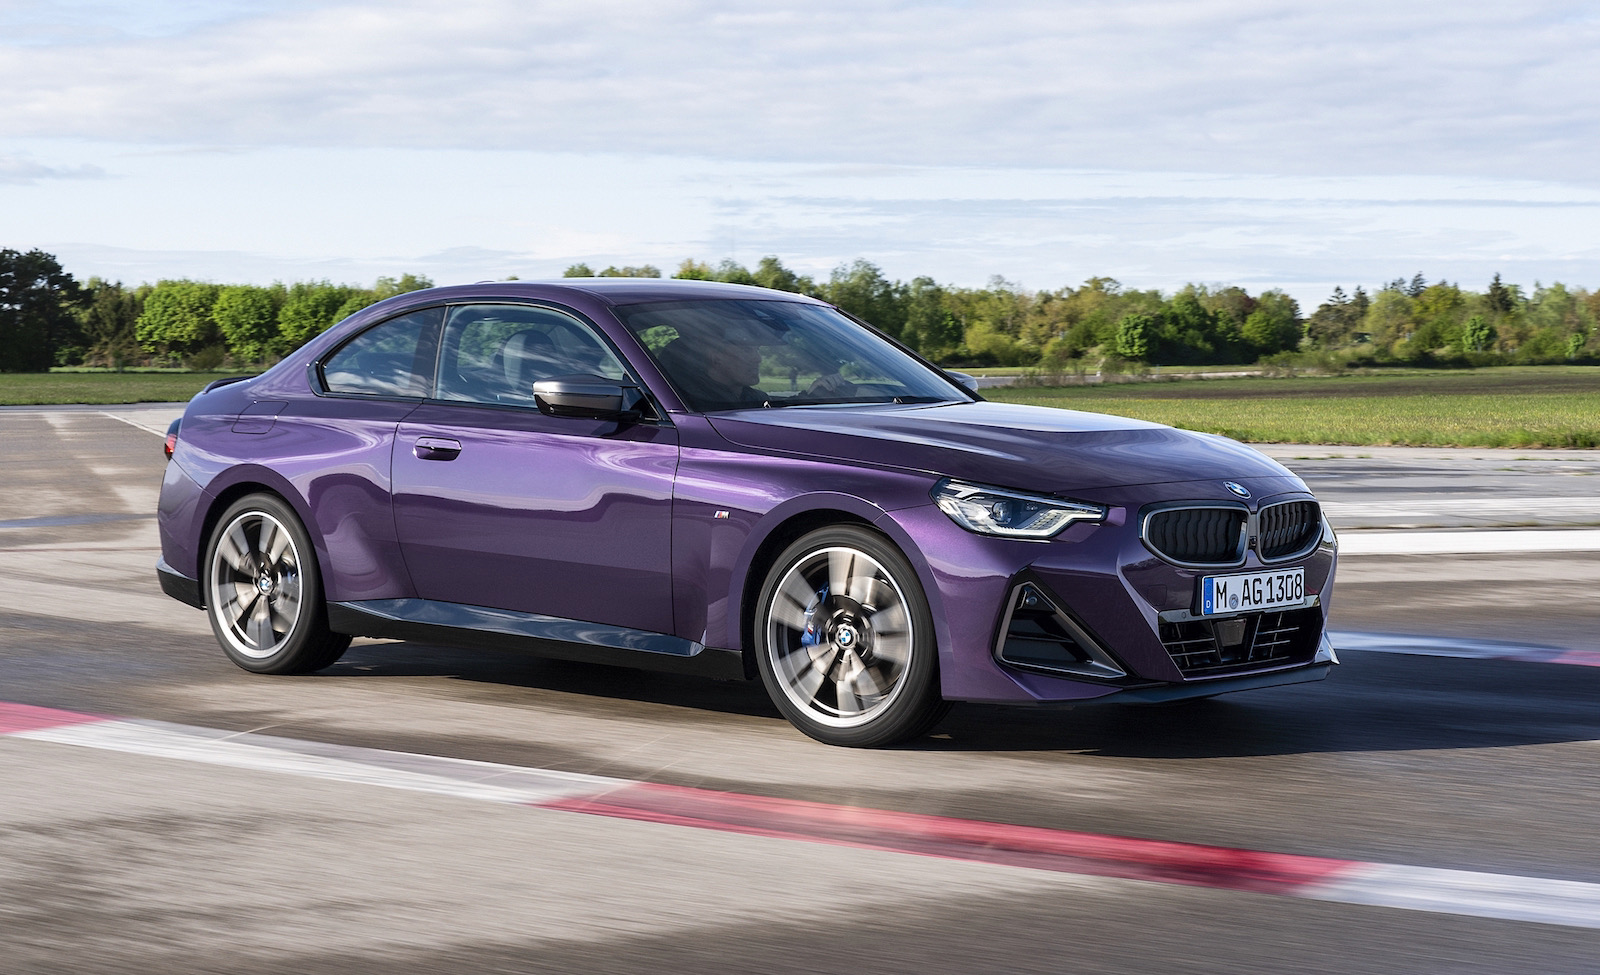 2022 BMW 2 Series prices confirmed for Australia, M2 coming next year